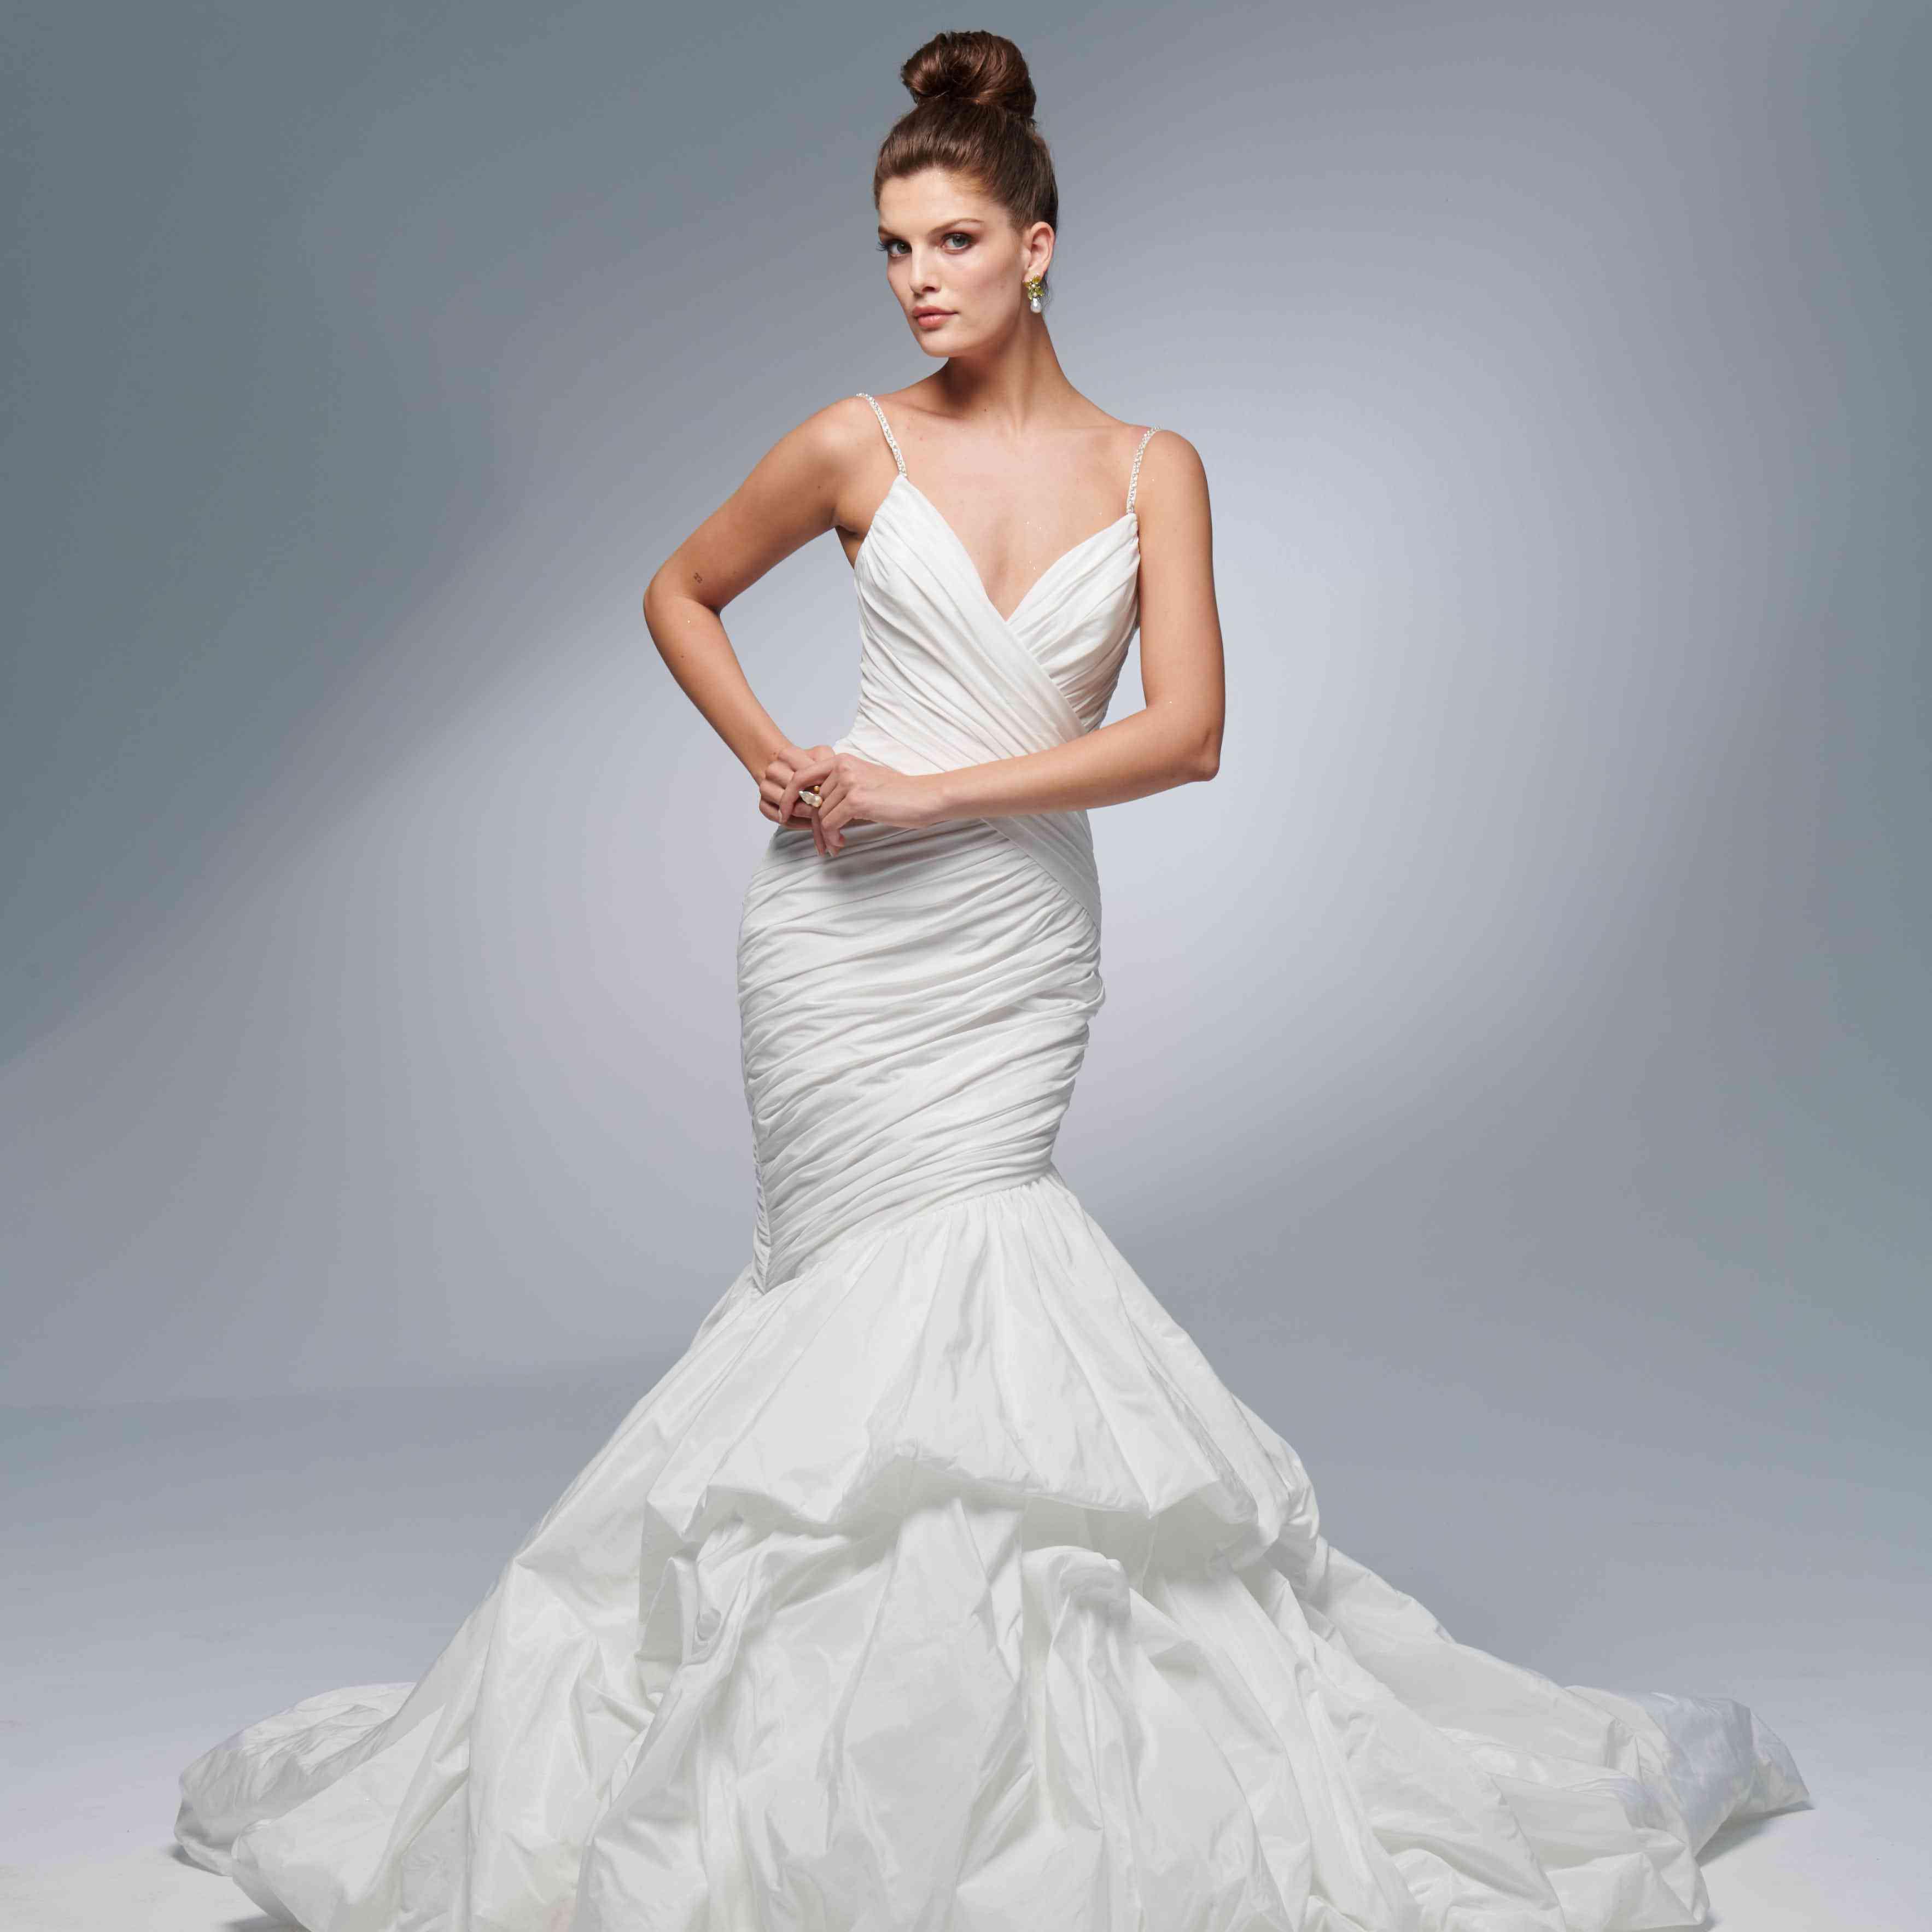 Bailey fit-and-flare wedding dress